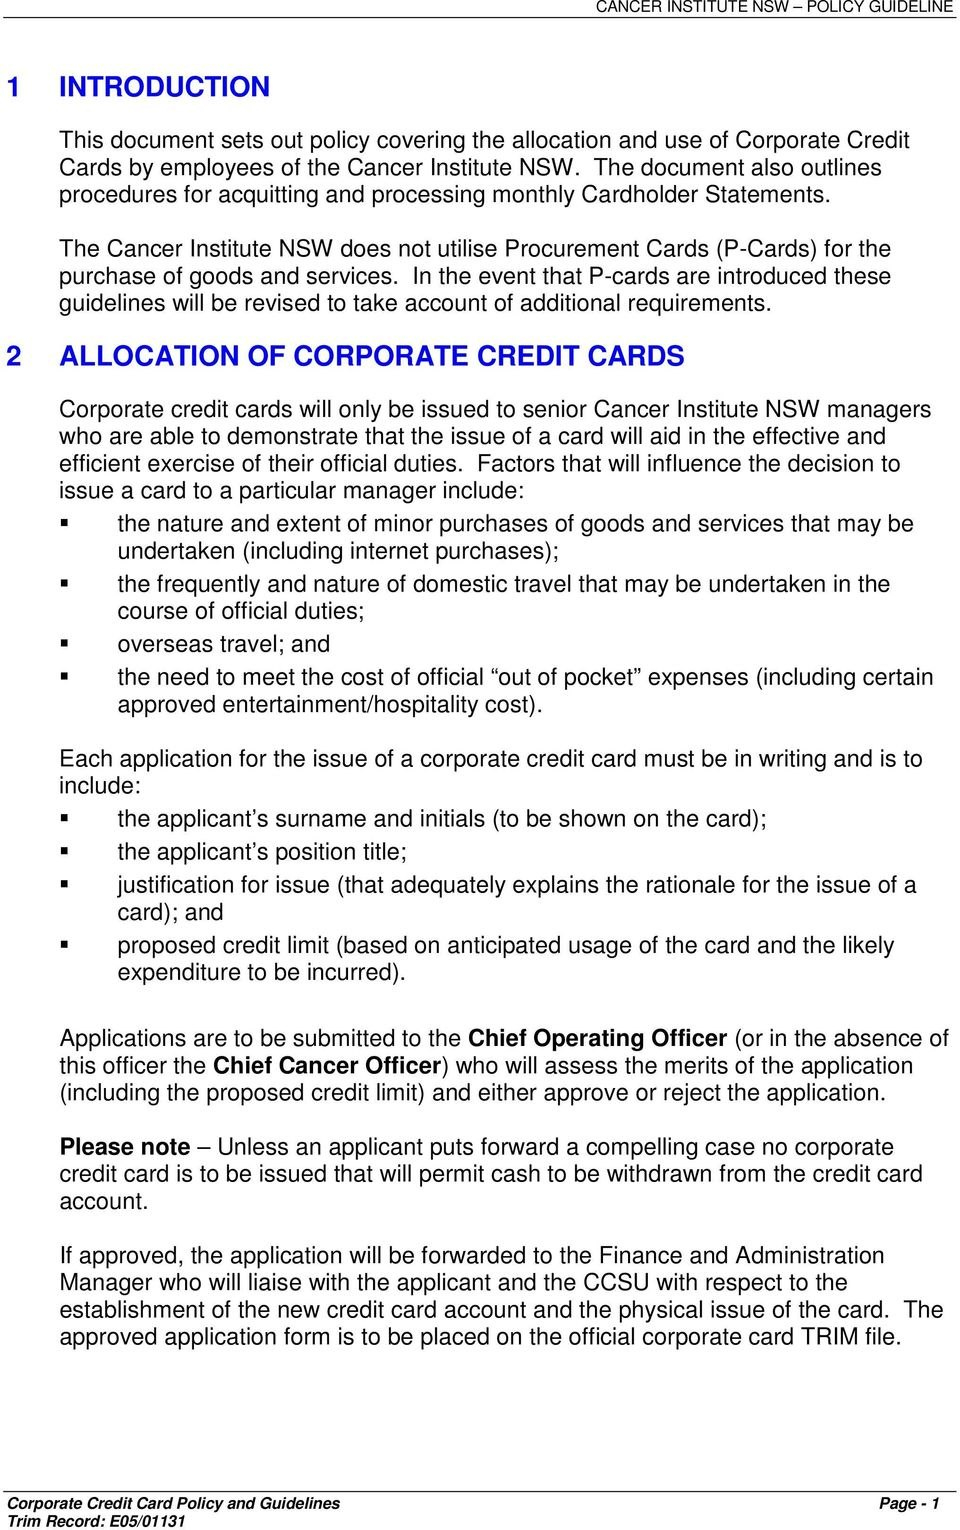 Corporate Credit Card Agreement Template Mandegar In Corporate Credit Card Agreement Template 10 Corporate Credit Card Policy Template Credit Card Companies